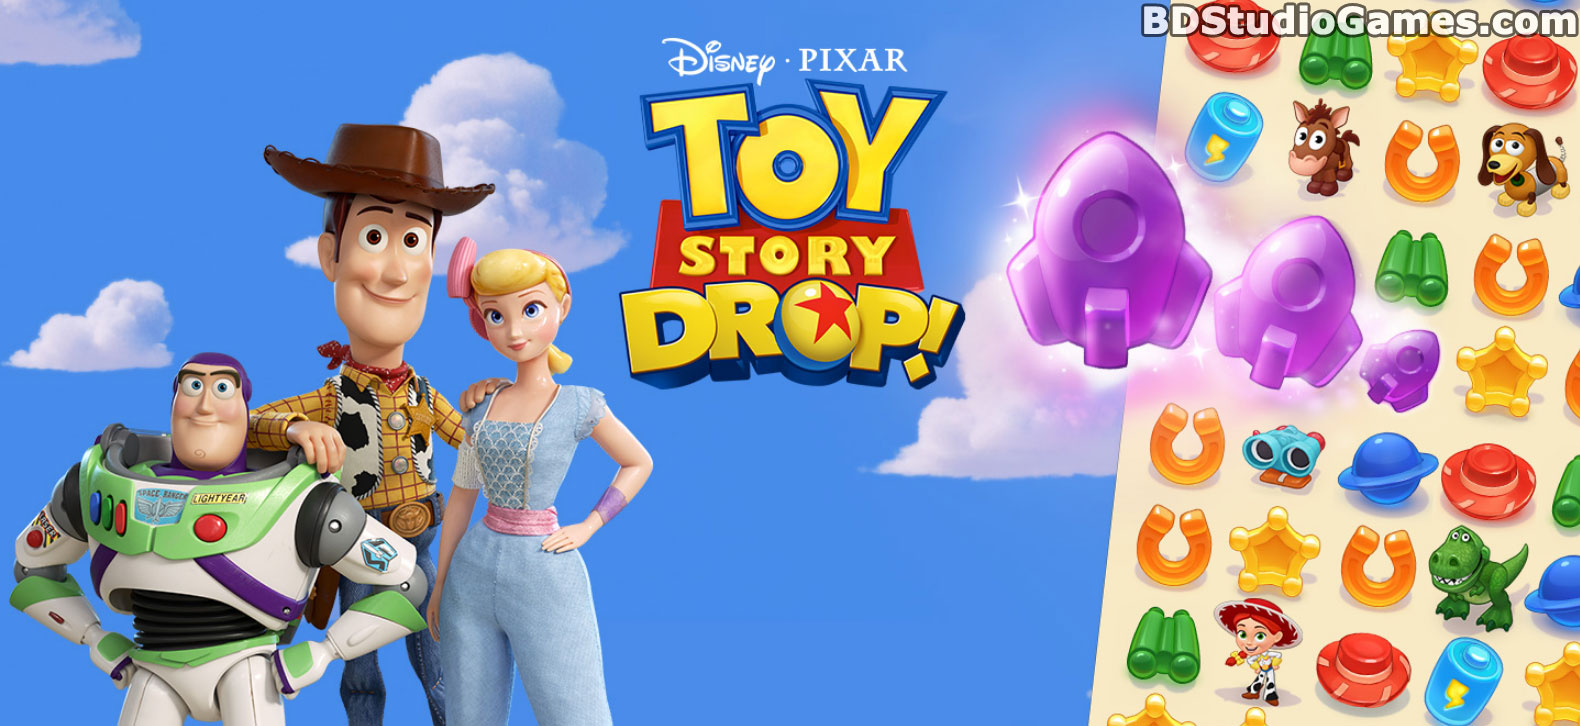 Toy Story Drop! Screenshots 1